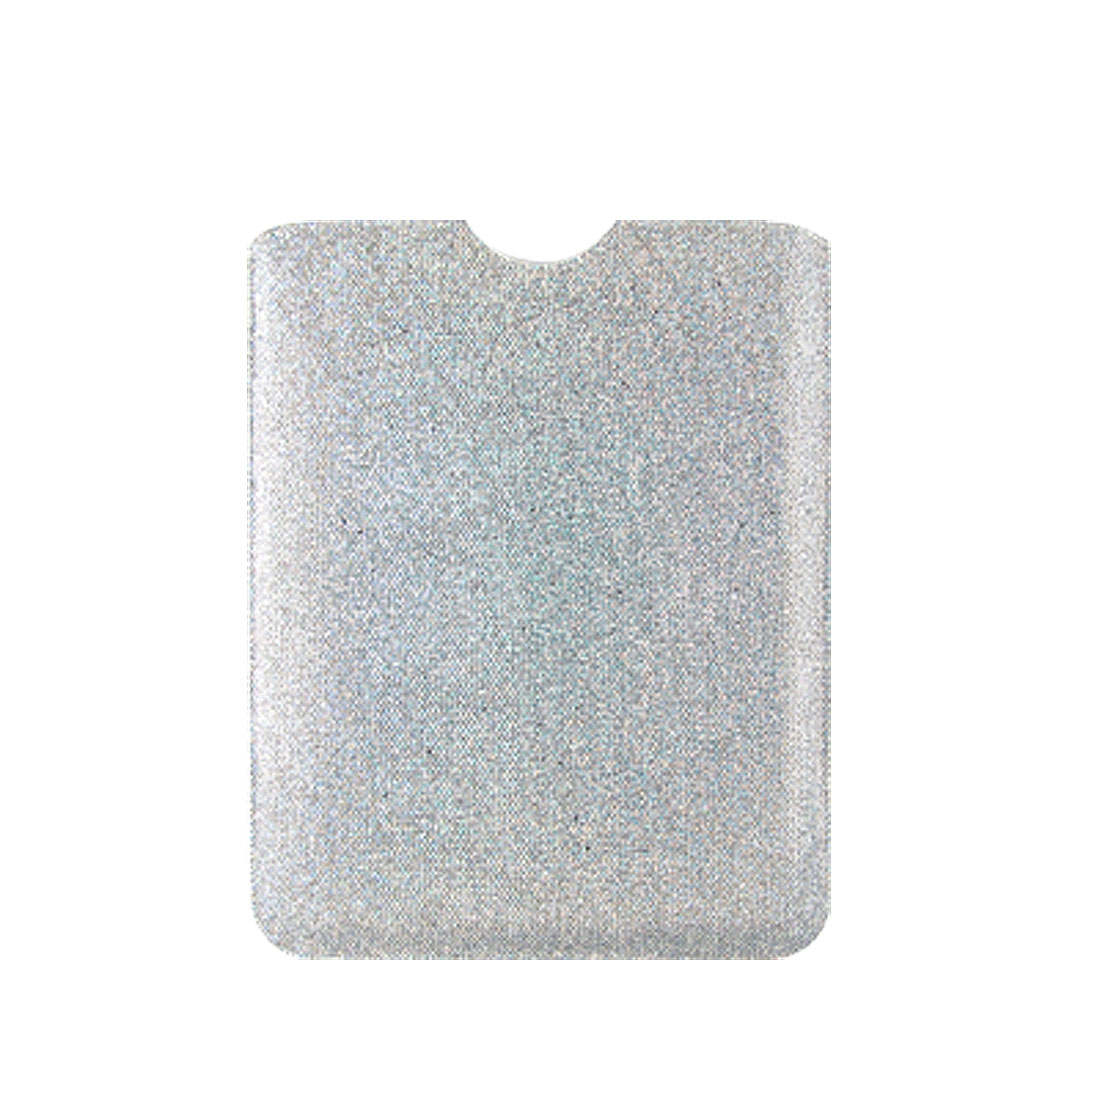 Colorful Glittery Sequin Case Pouch for iPad